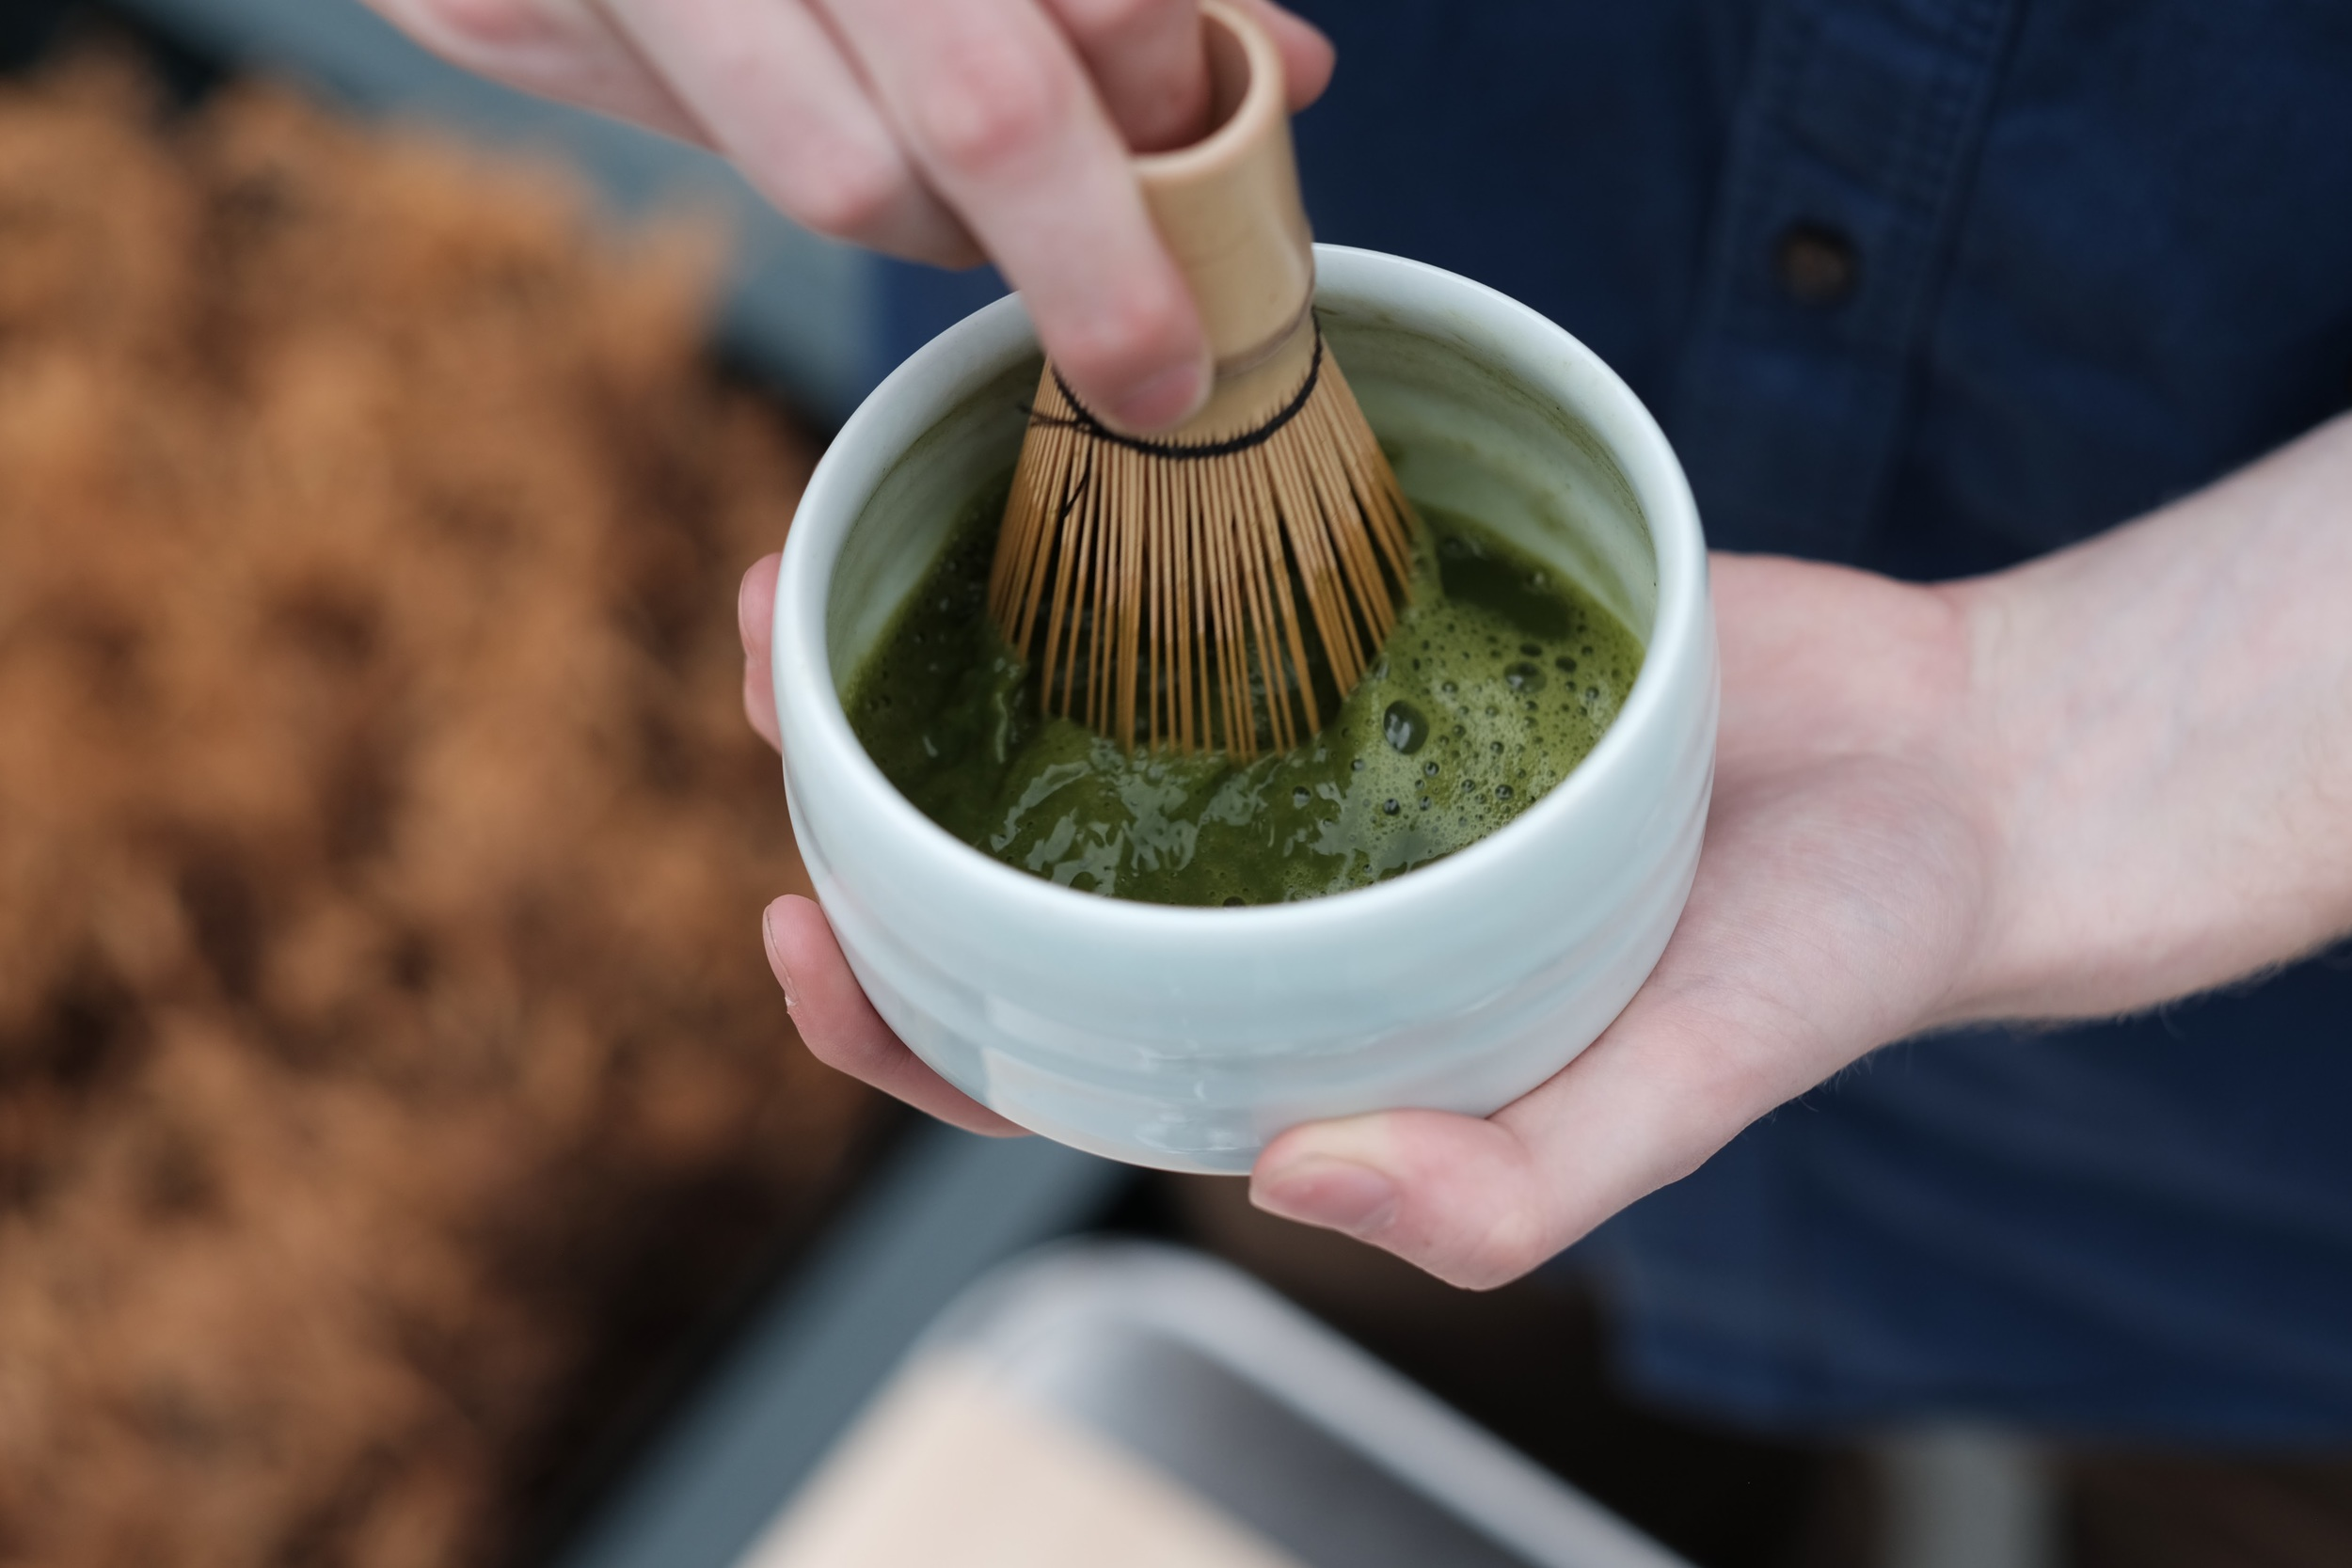 """Whisk away! We recommend briskly whisking in a """"M"""" motion until the matcha is nice and frothy. Enjoy! (Note:Remember to whisk again if matcha is left sitting.)"""